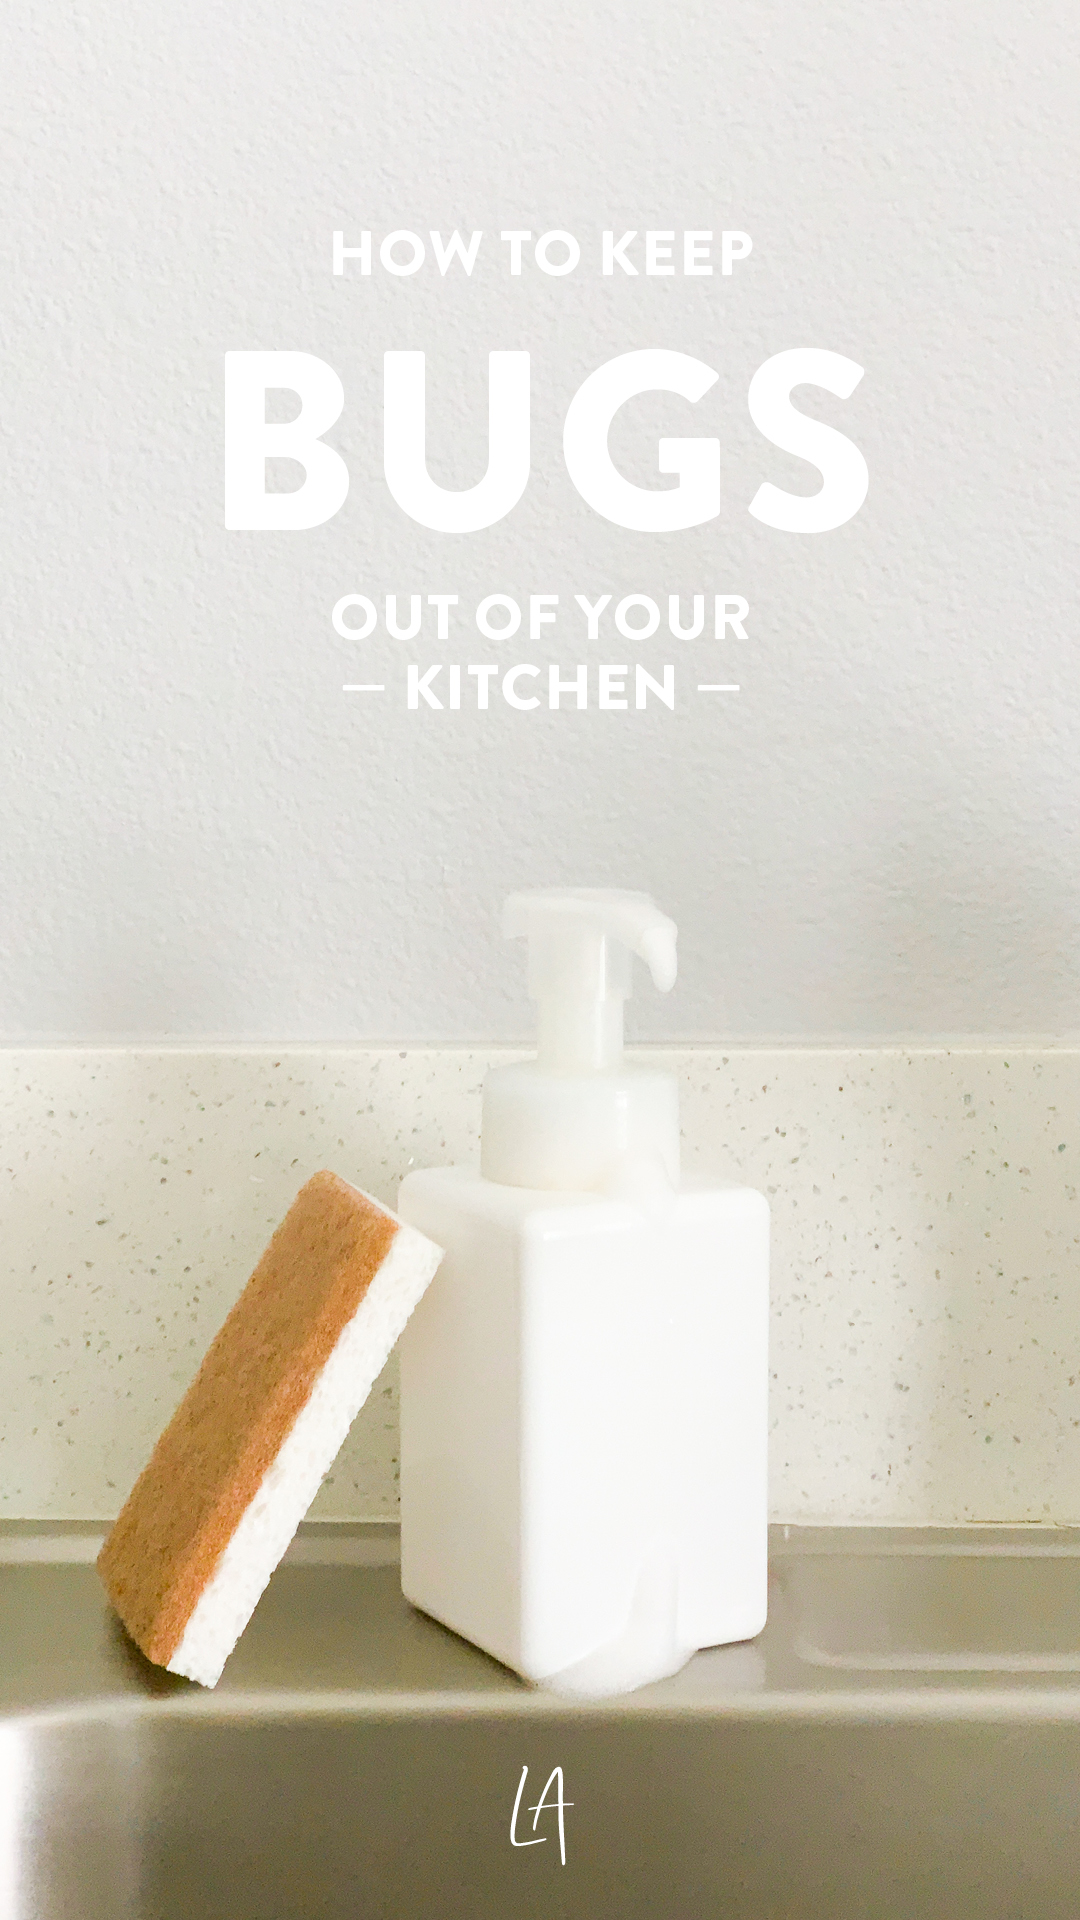 How to keep bugs out of your kitchen